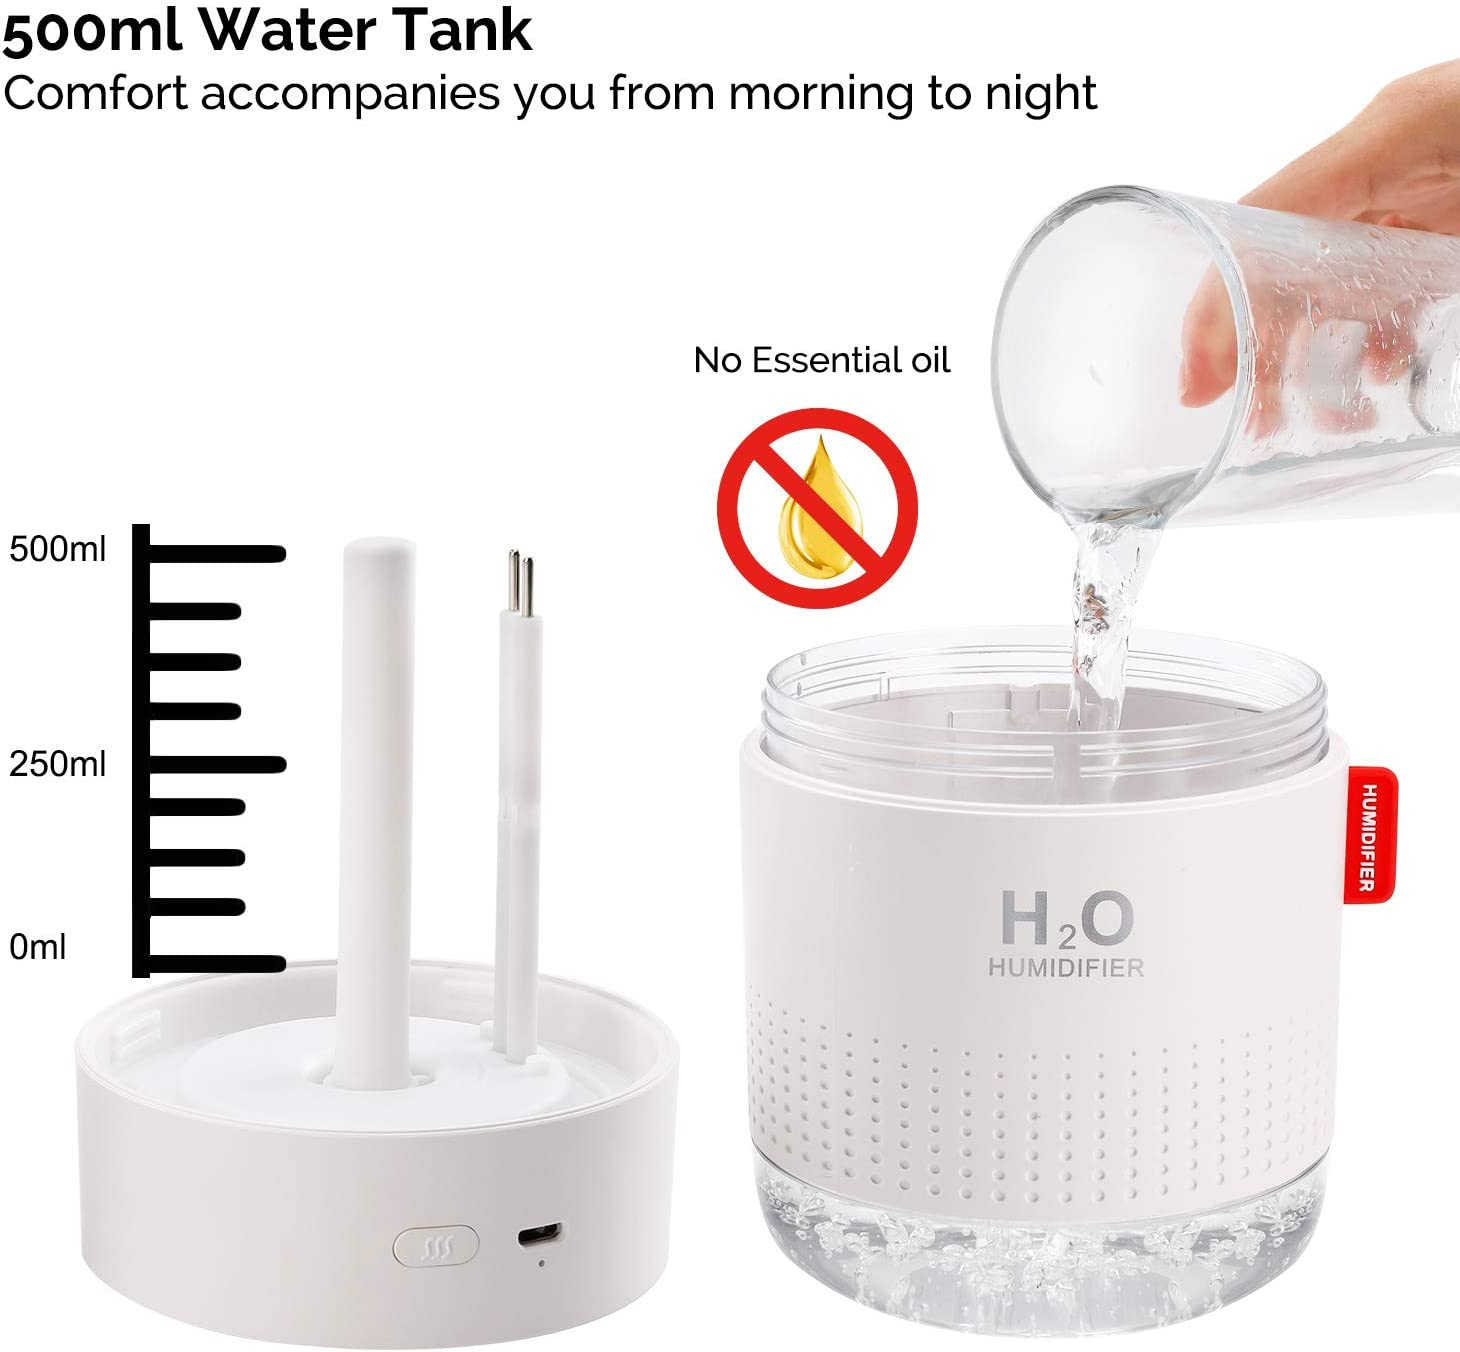 USB Personal Desktop Humidifier for Baby Bedroom Travel Office Home Super Quiet 500ml Small Cool Mist Humidifier with Night Light 2 Mist Modes Auto Shut-Off Portable Mini Humidifier Blue